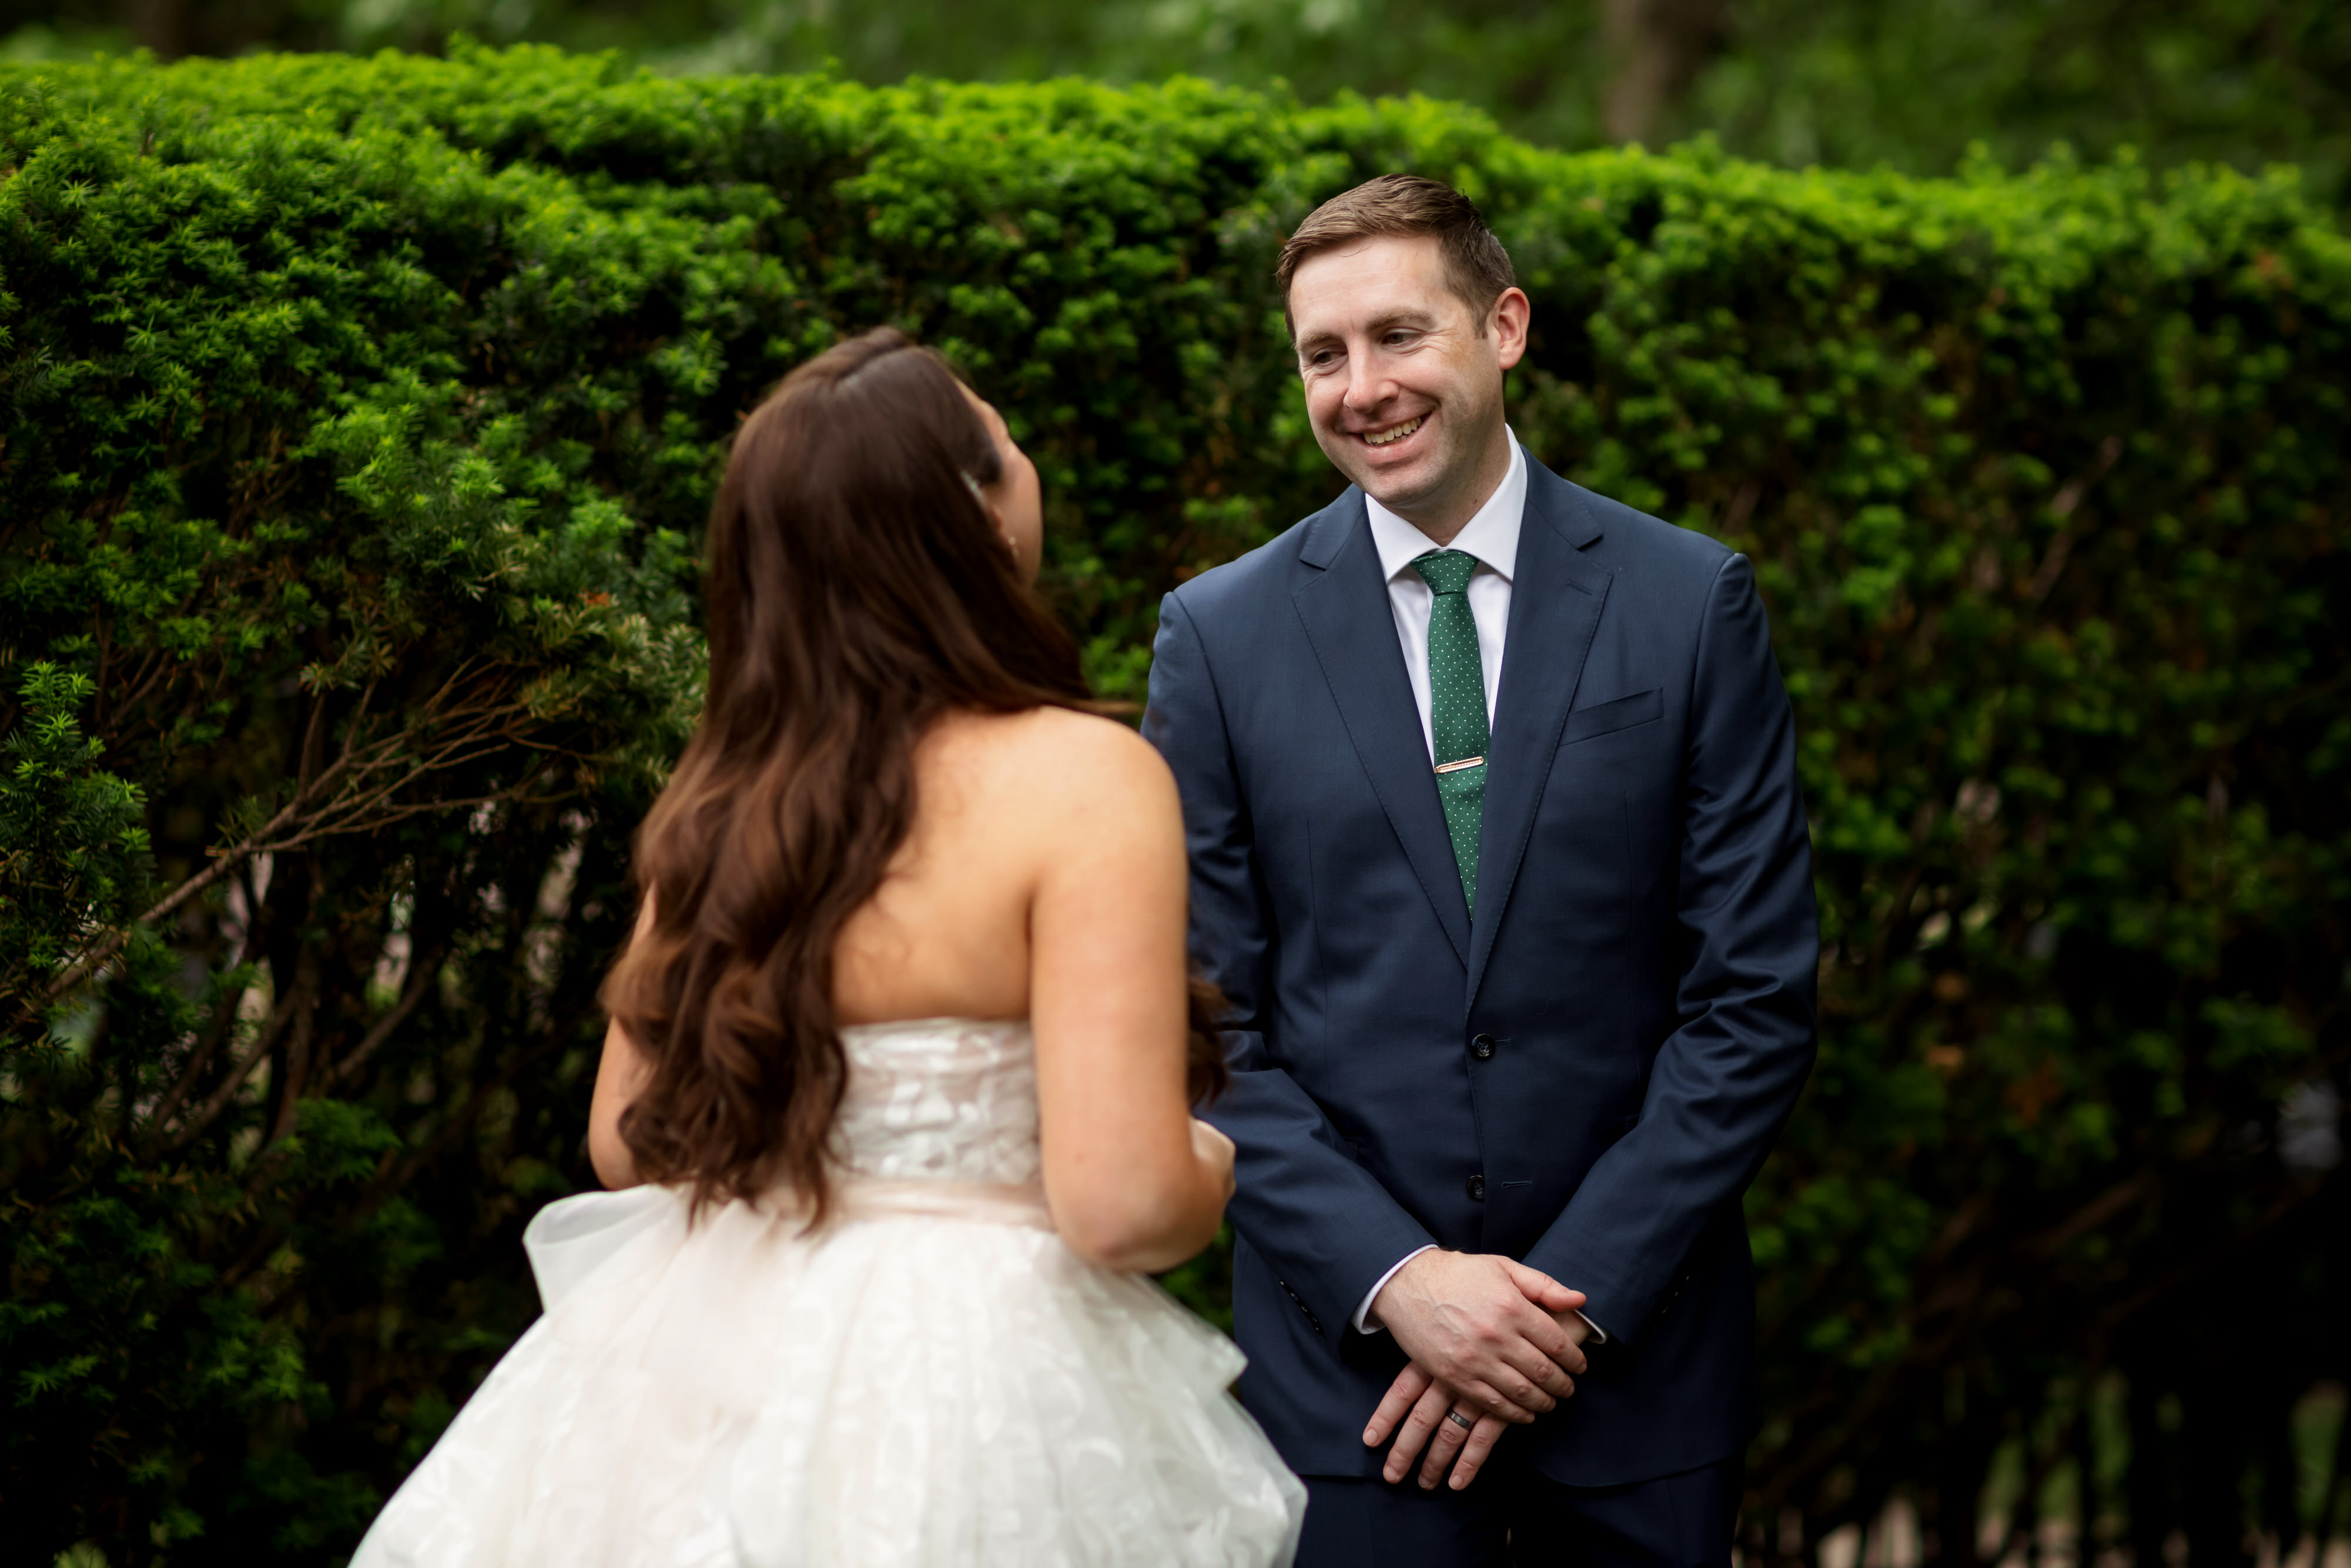 first look between bride and groom with green bushes in background